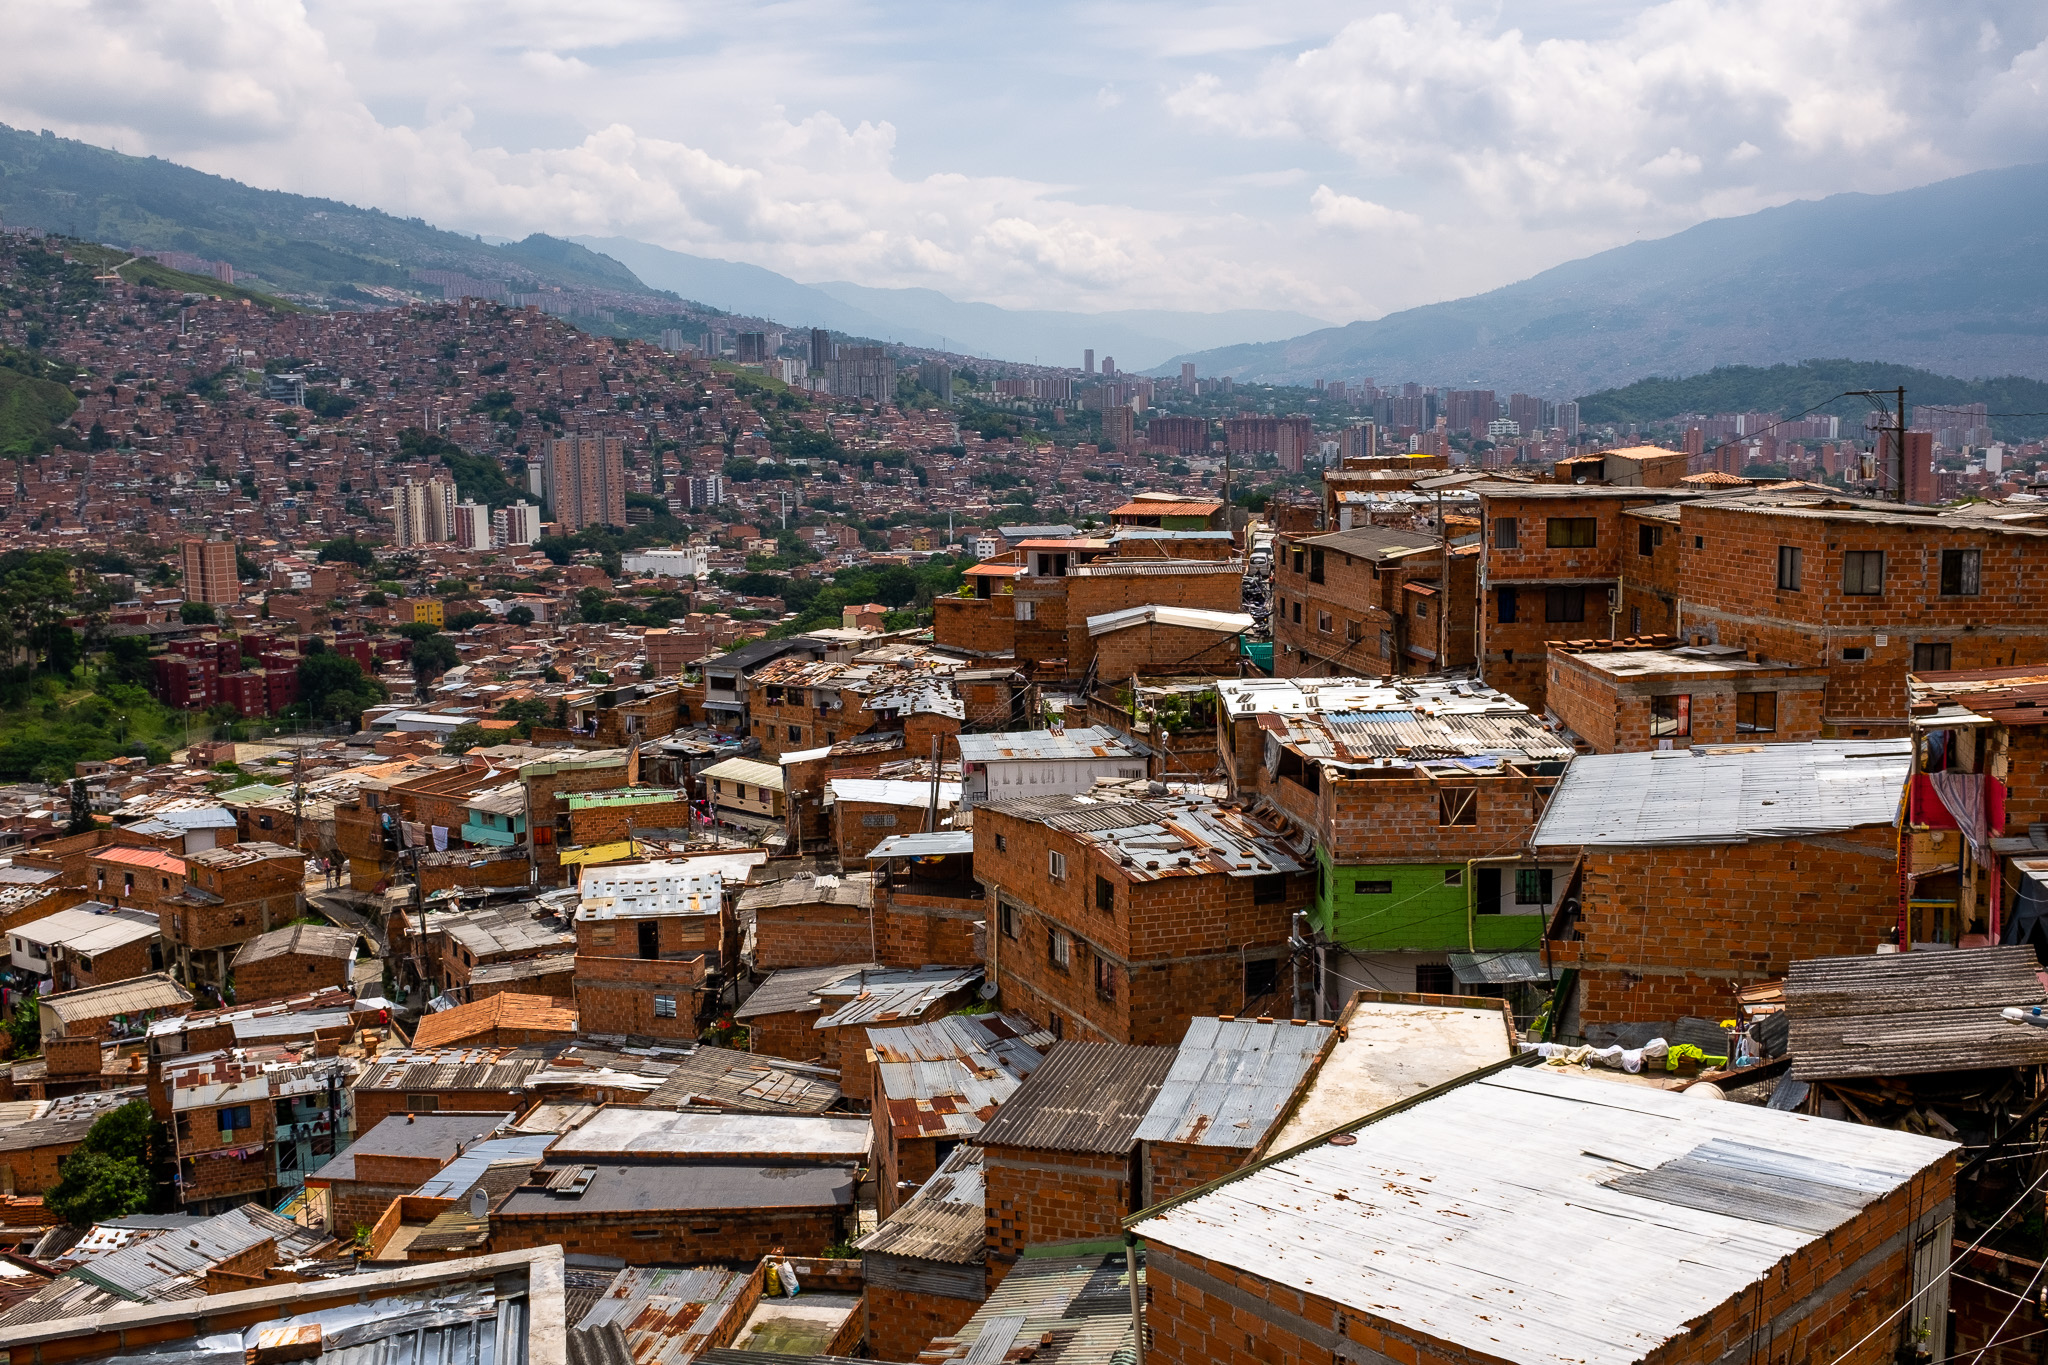 View of Medellín from Comuna 13. A notorious neighbourhood with a bloody history.